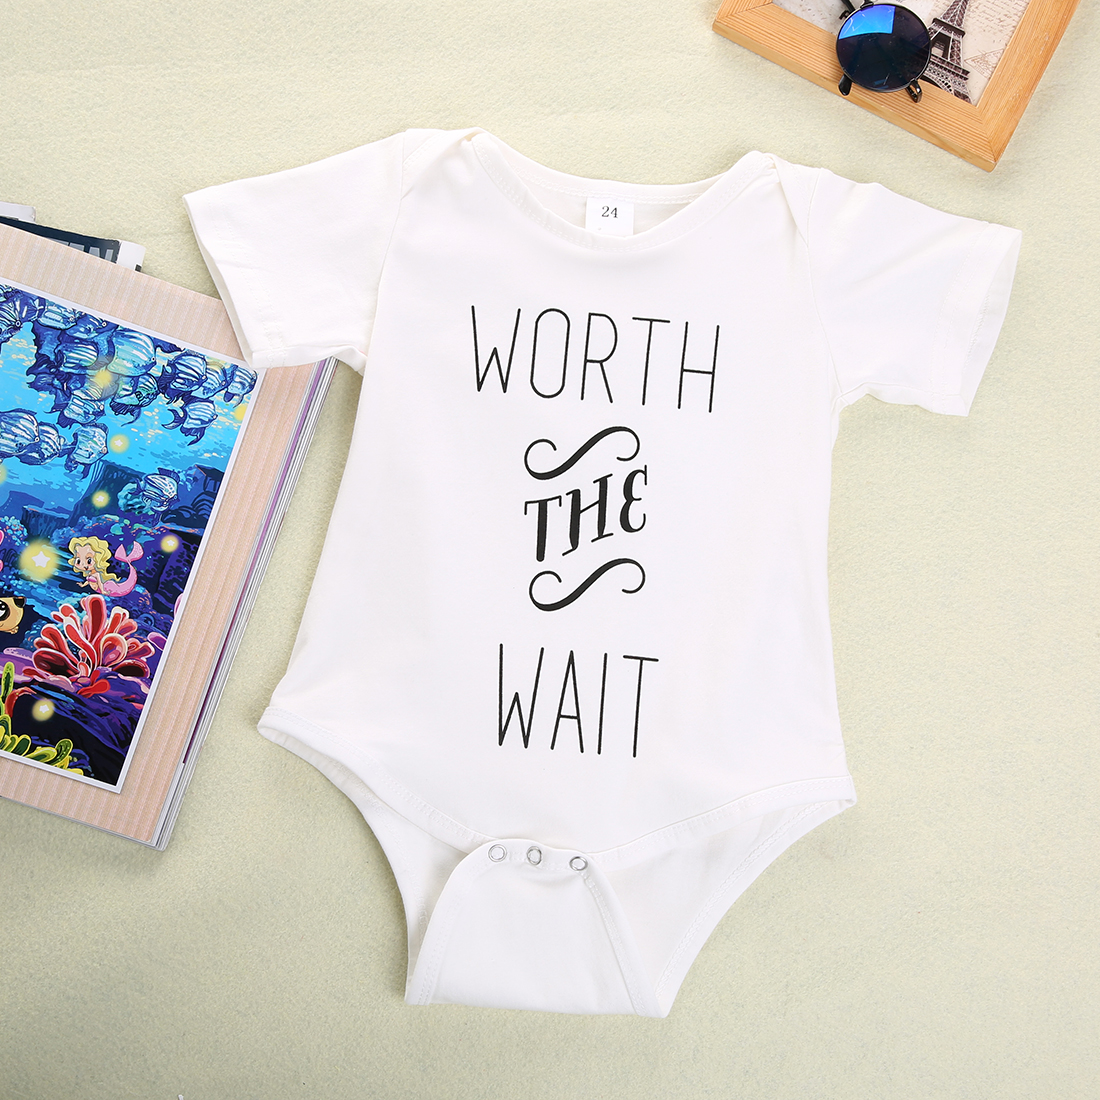 16 New Baby Boys Girls Bowtie Quote Bodysuit Playsuit Outfits Clothing 0-12M 1